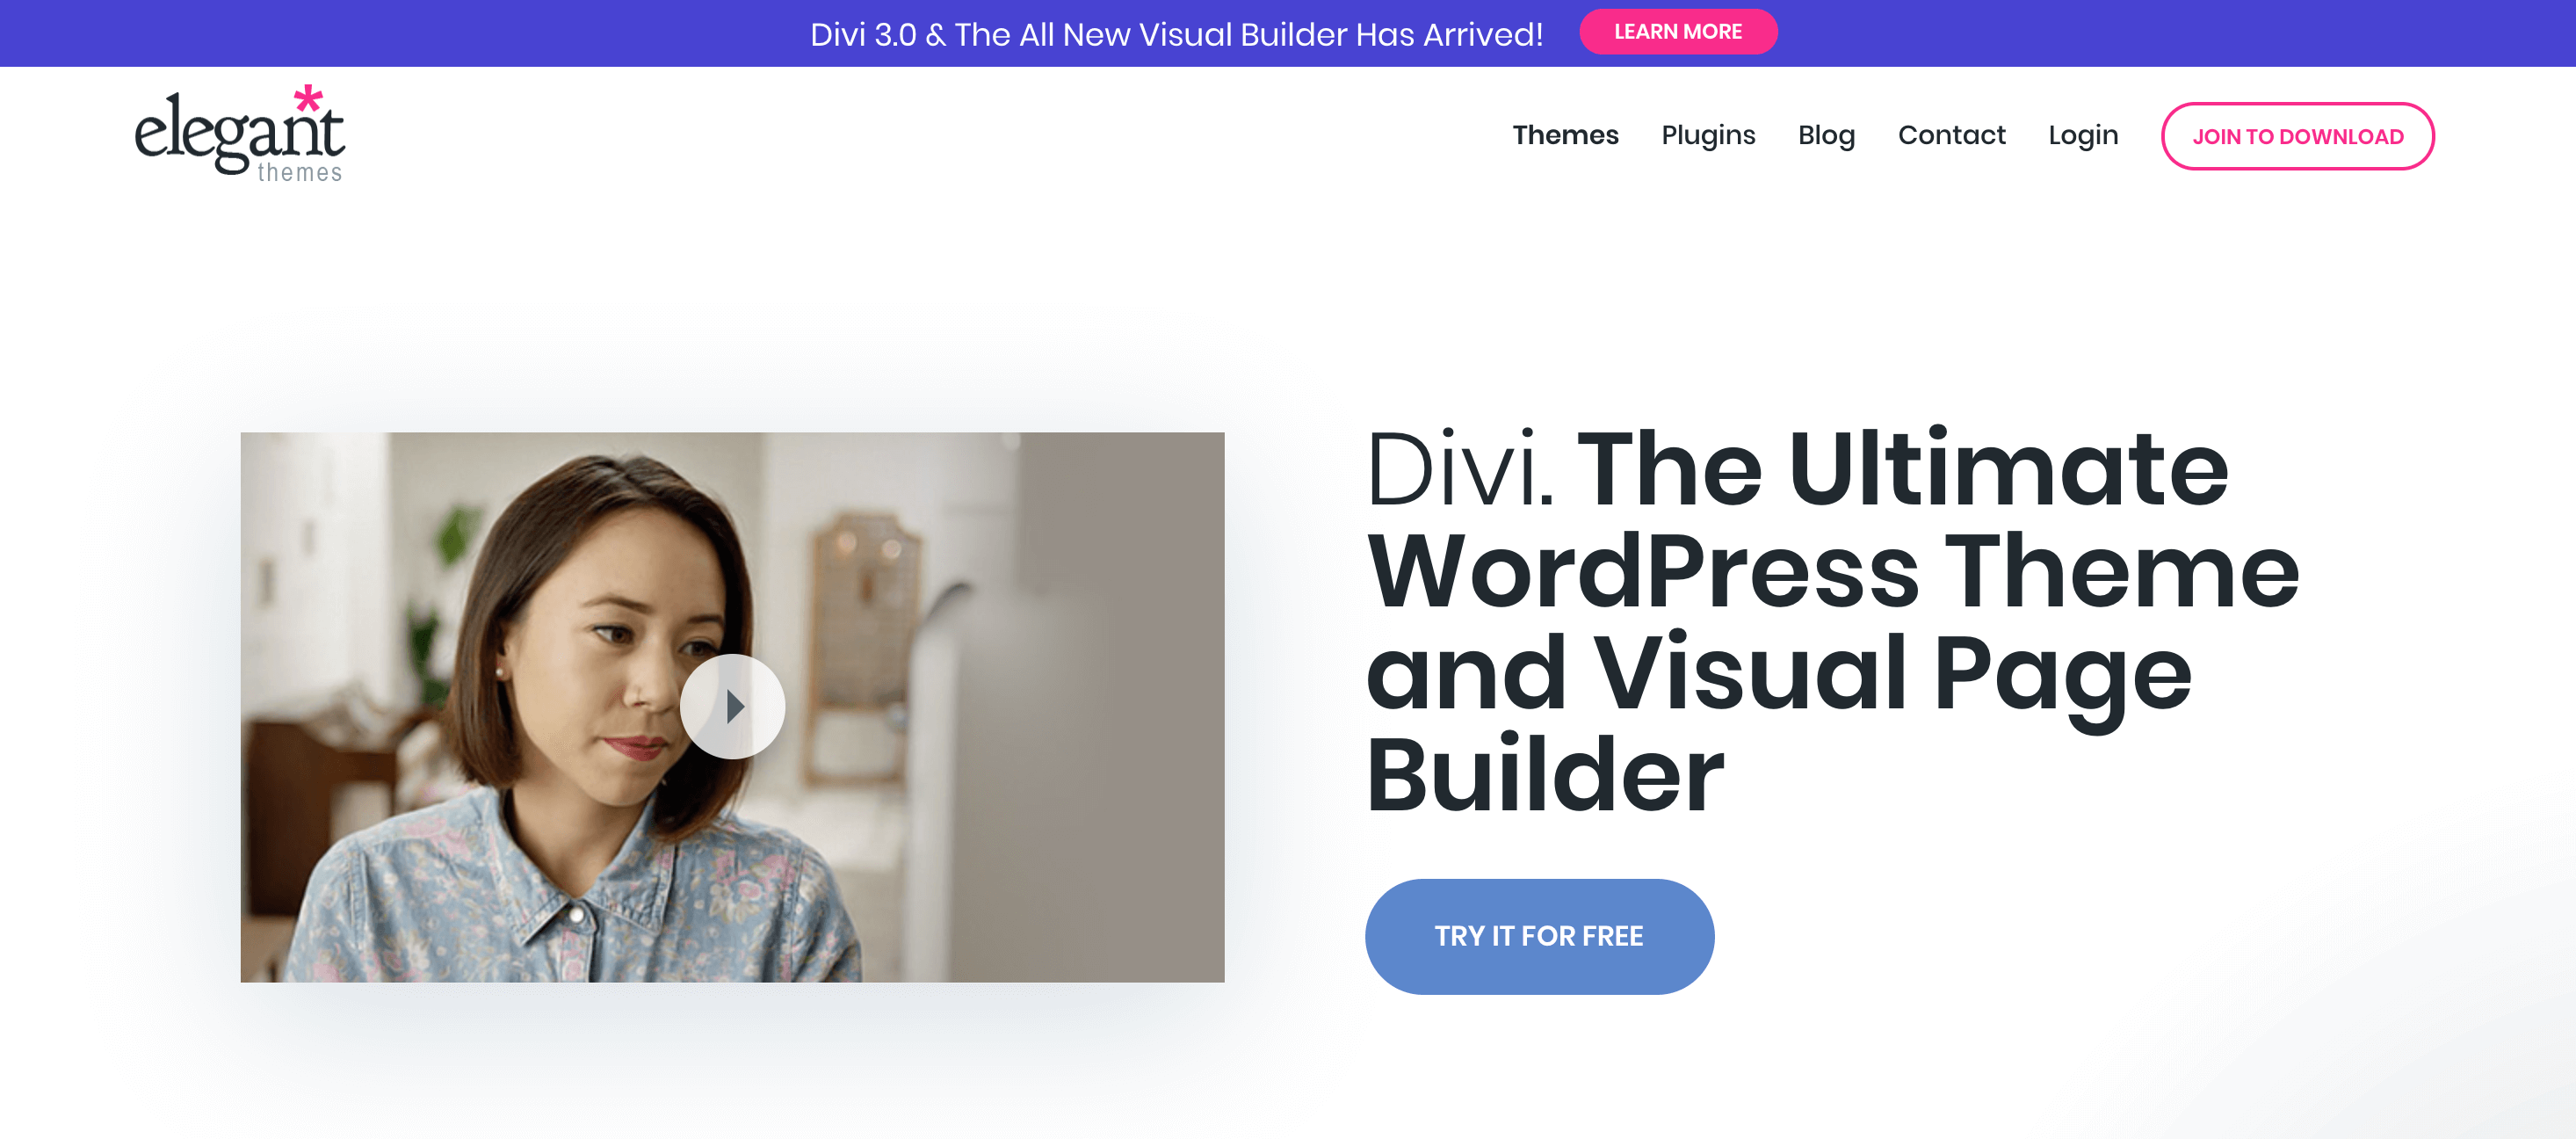 The website for the Divi builder.